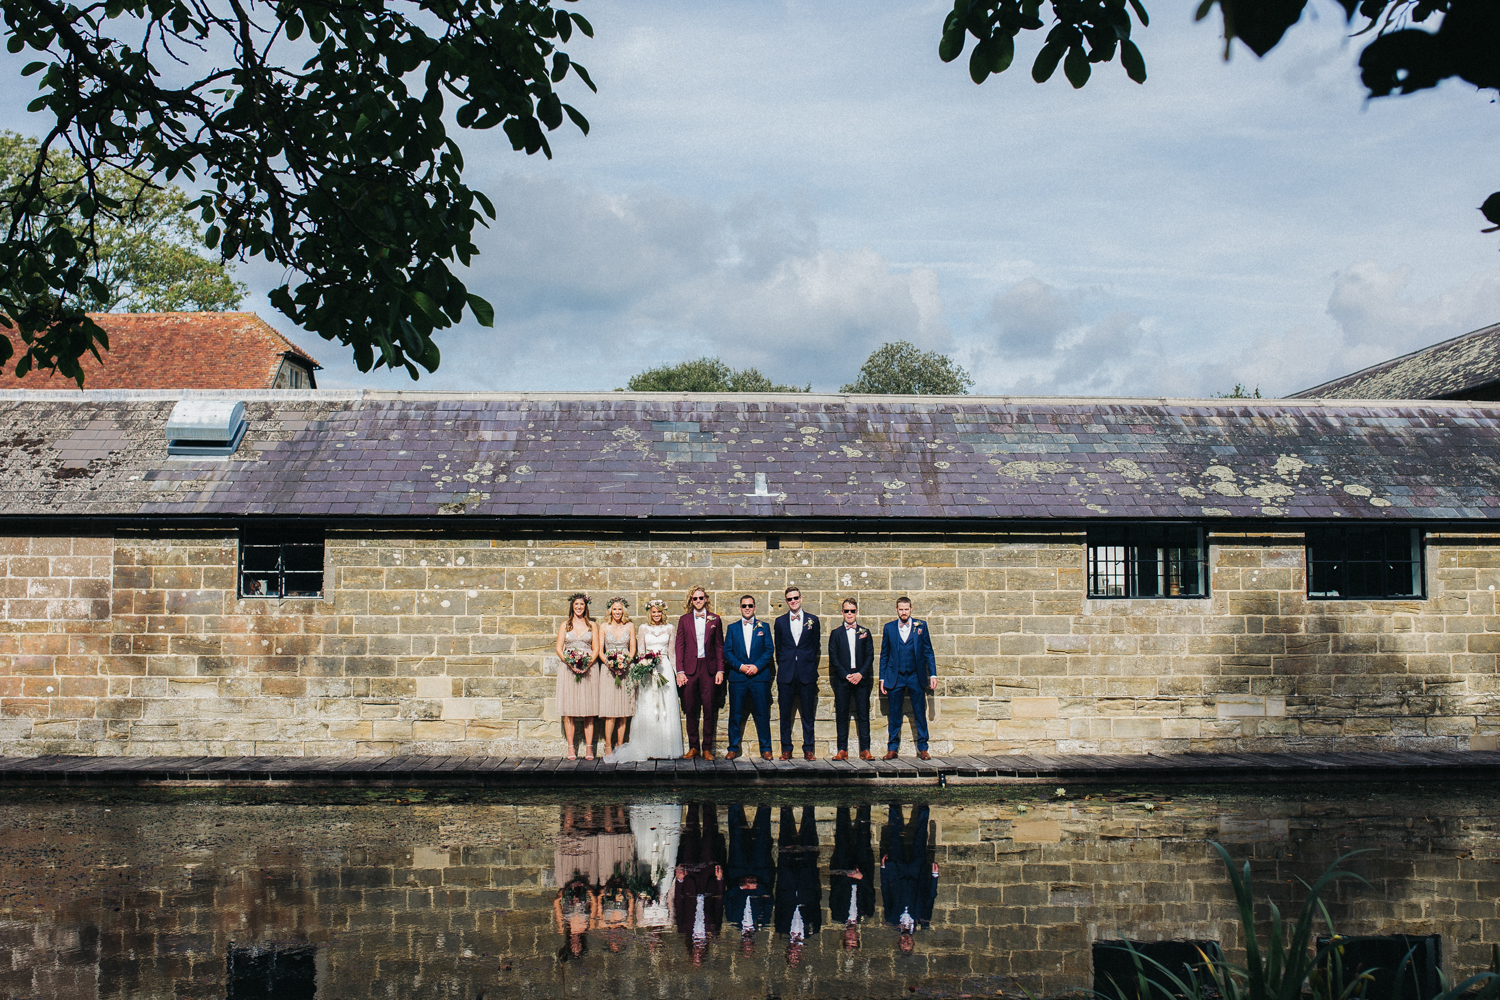 creative-relaxed-wedding-photography-stop-motion-films-teesside-north-east-yorkshire-0010.jpg